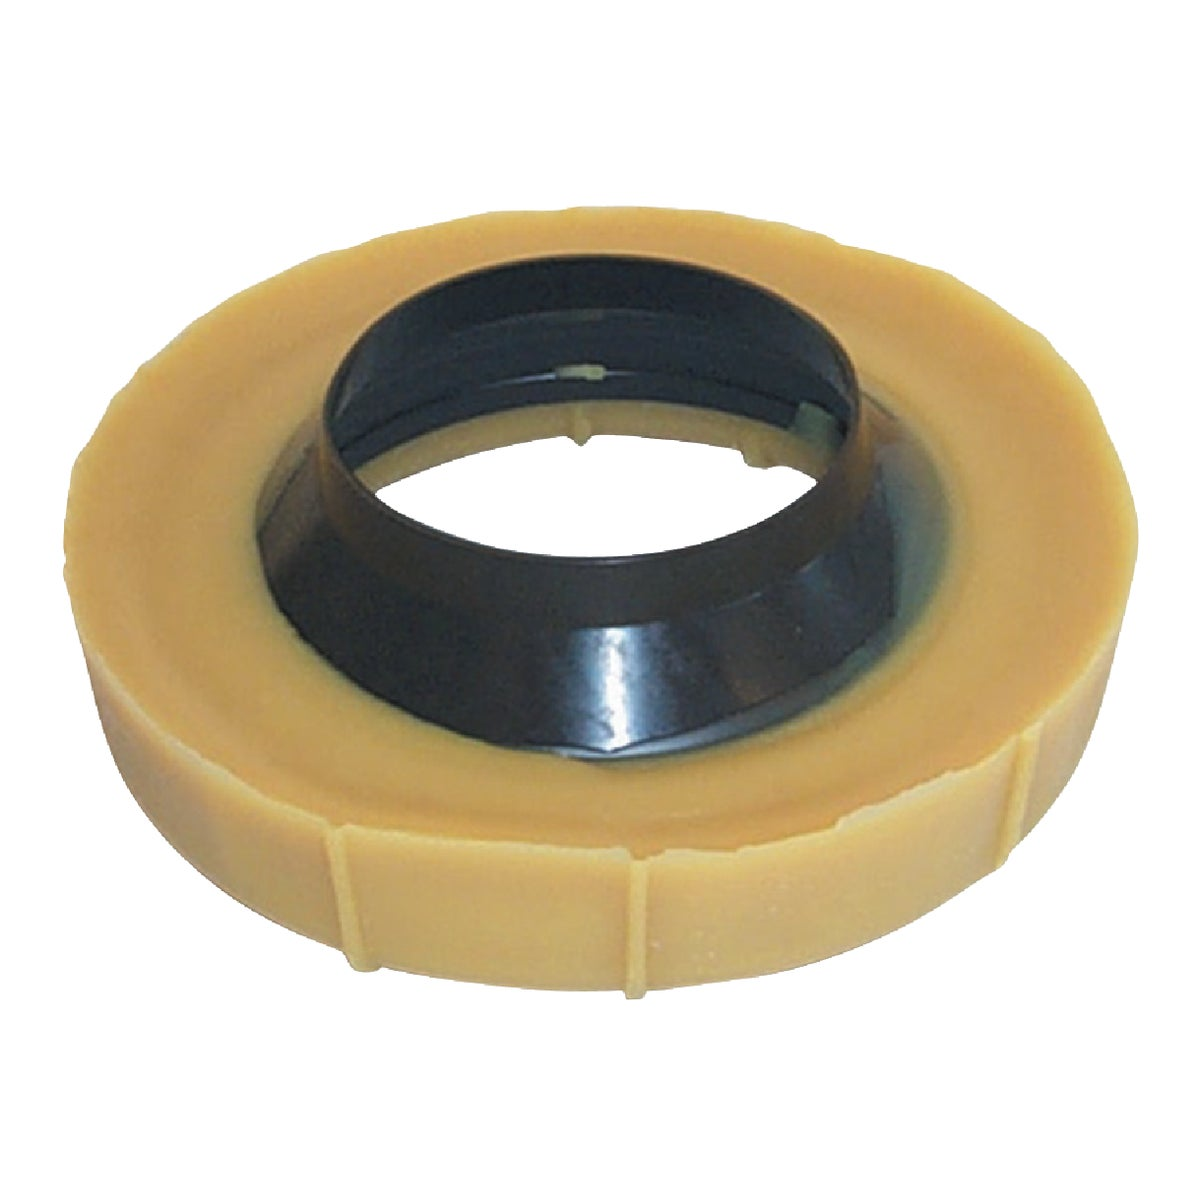 FLANGED WAX GASKET - 001175 by Wm H Harvey Co